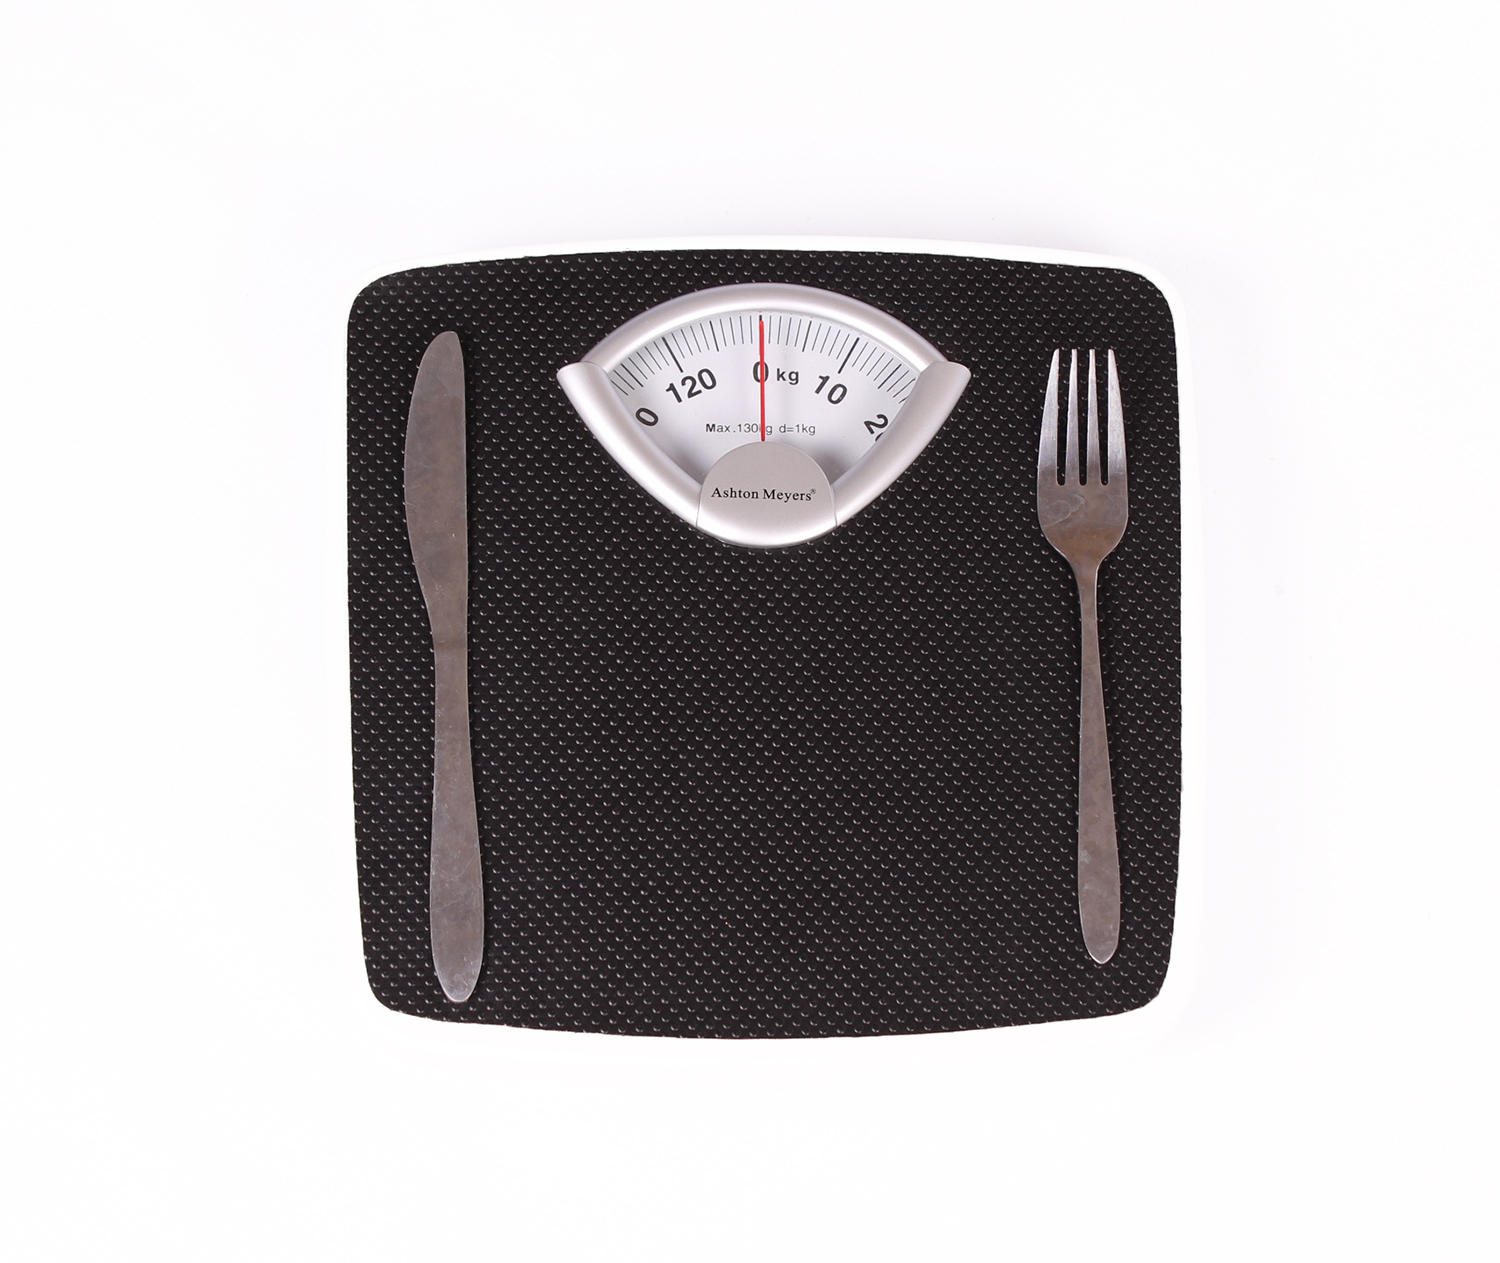 Folk and knife placed on weigh scale